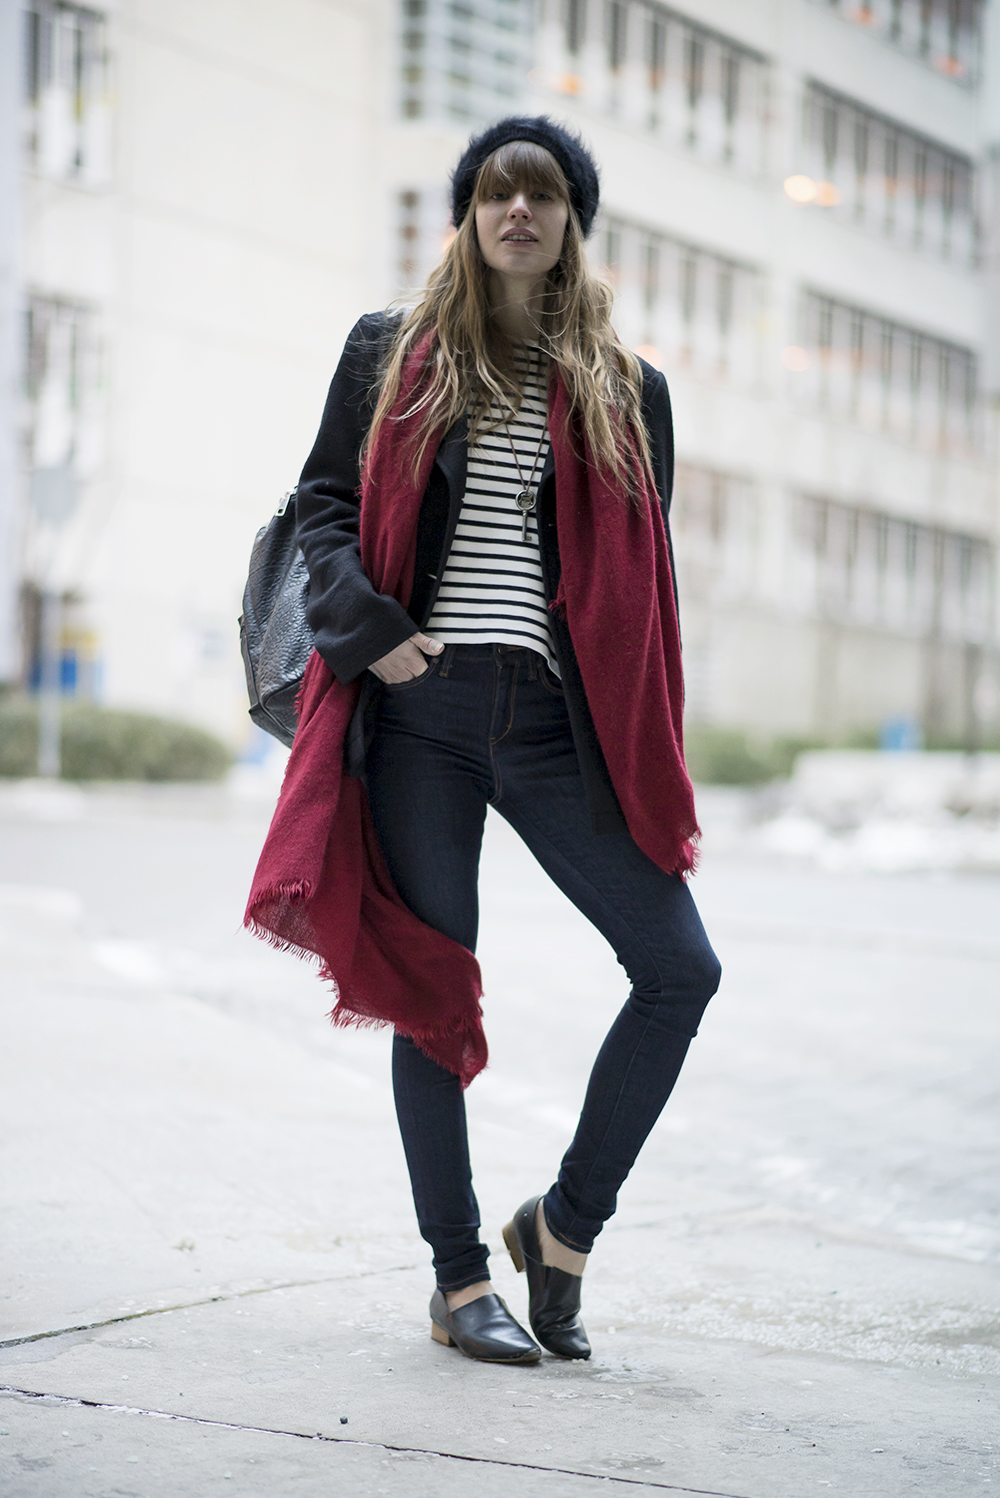 A RED SCARF   Just Another Fashion Blog